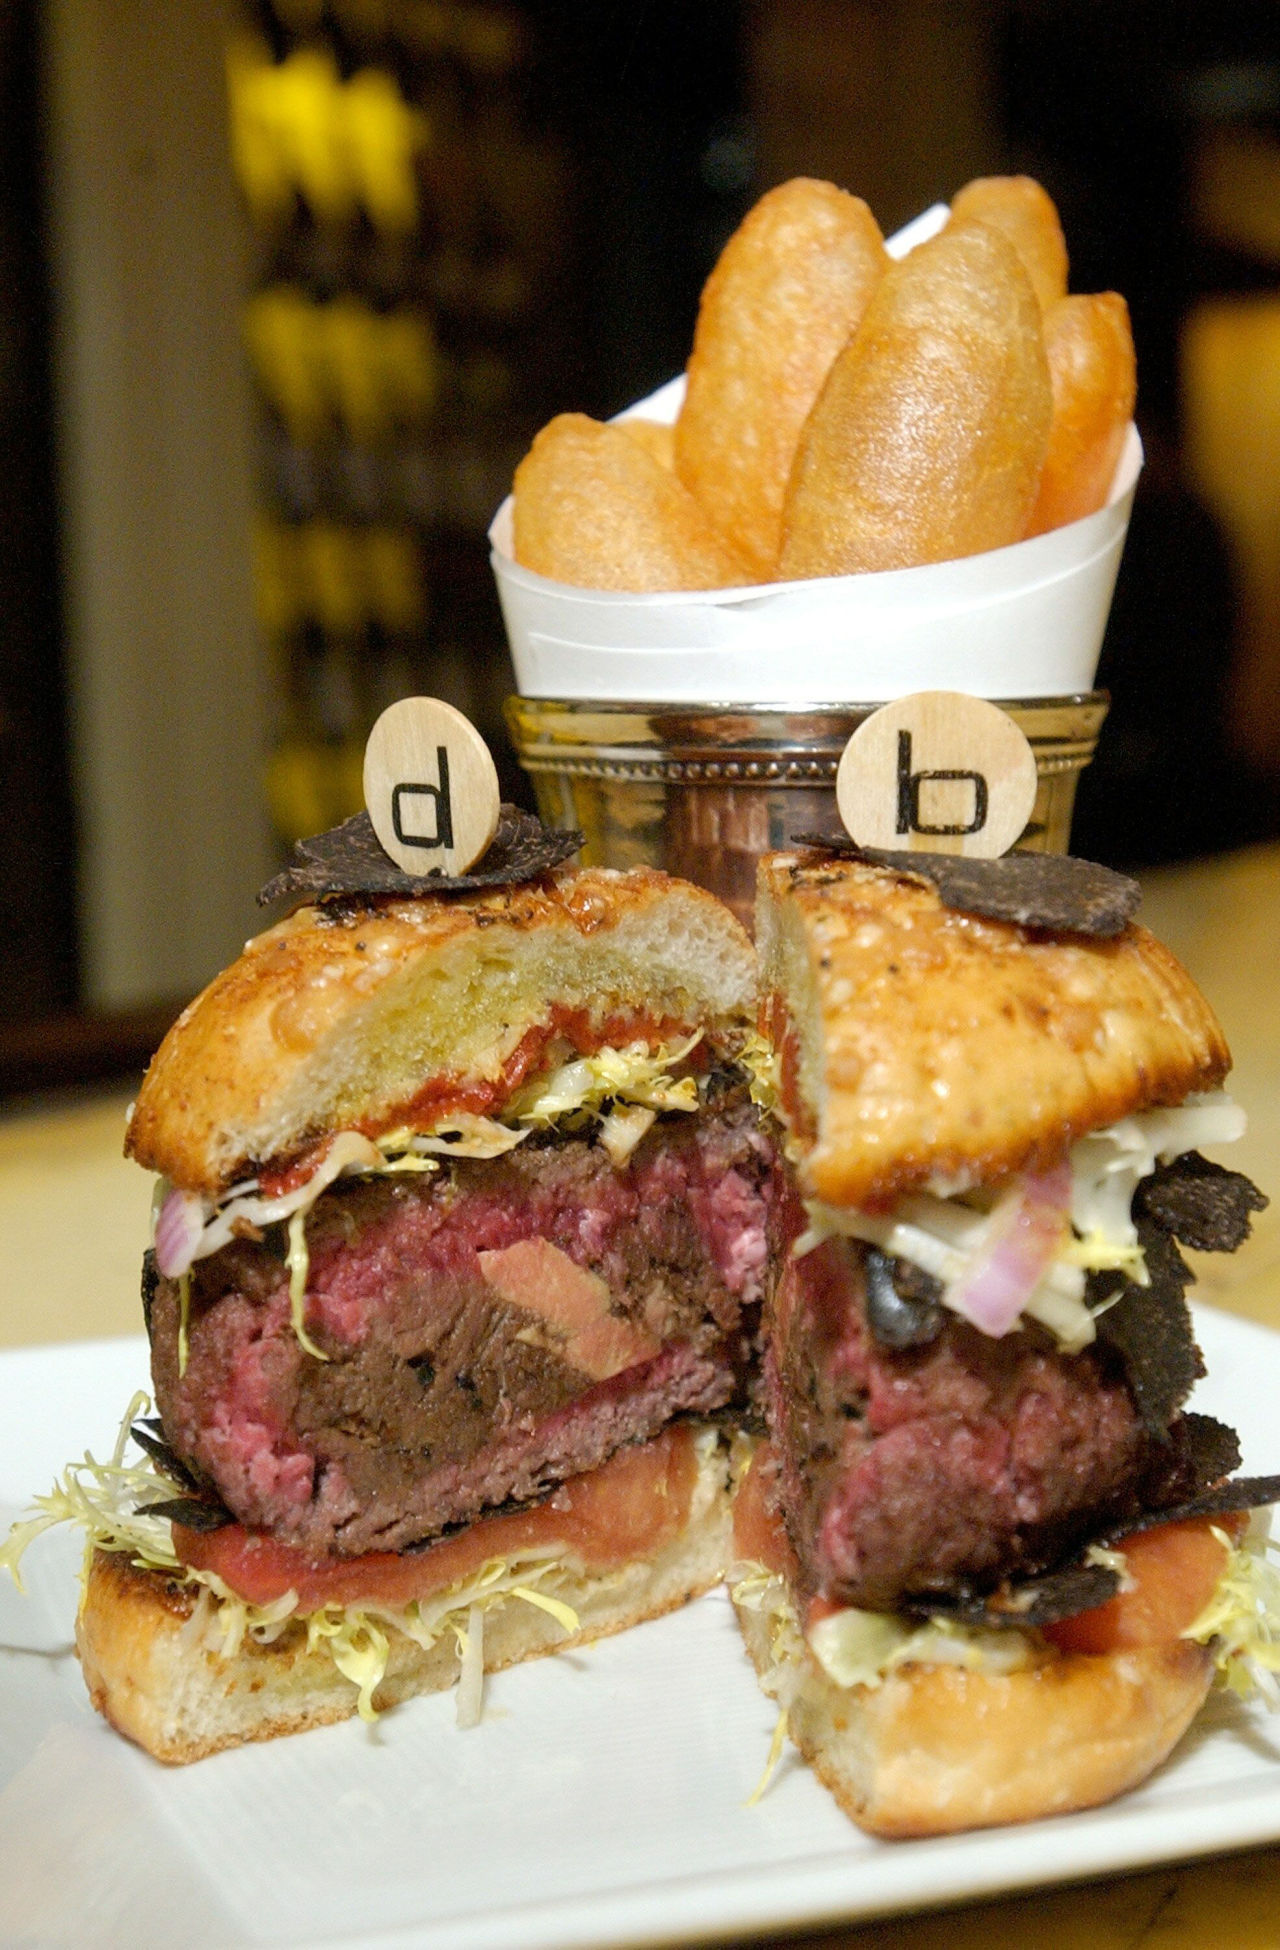 7. DB Royale Double Truffle Burger